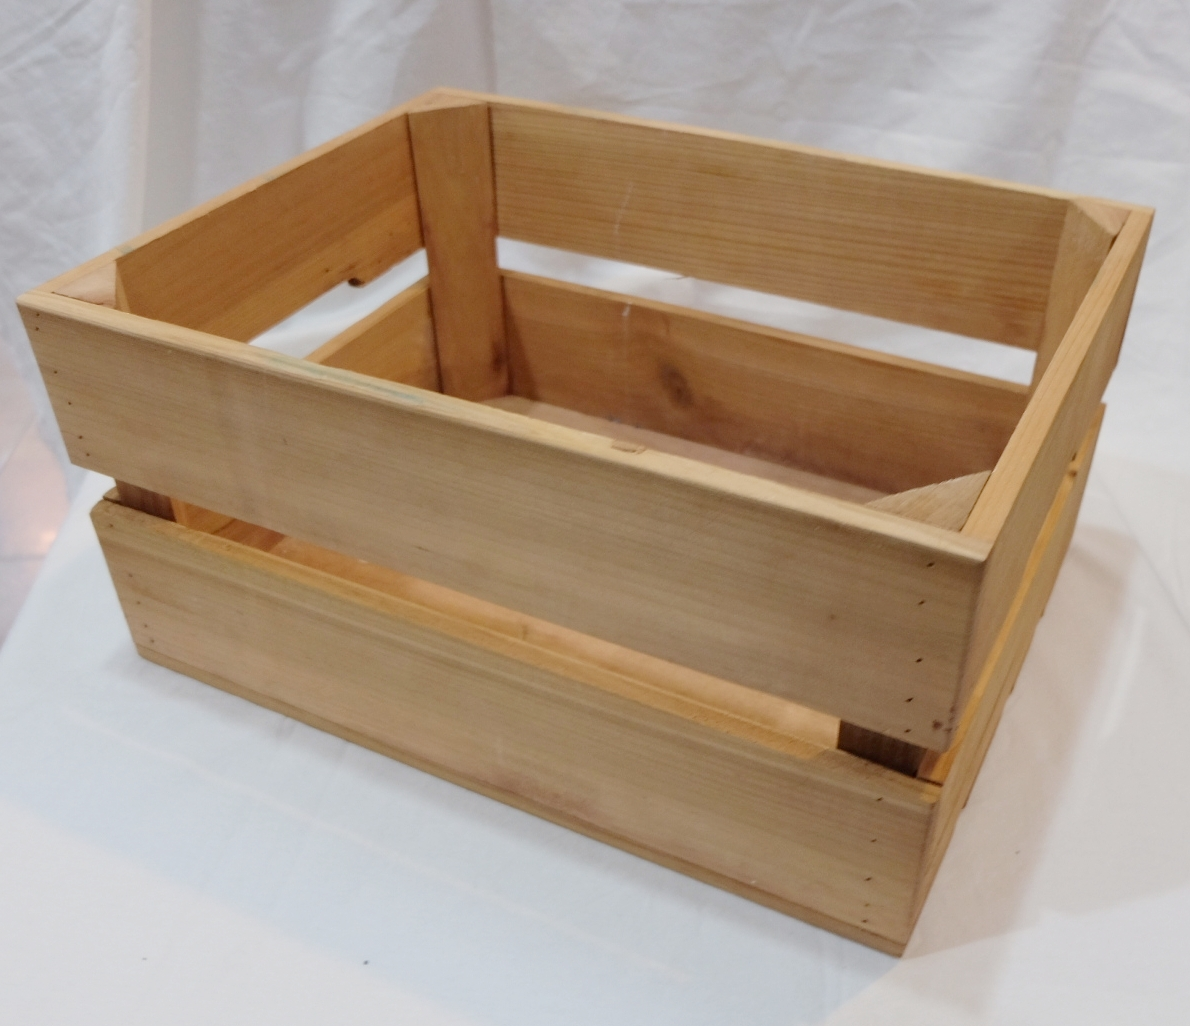 LARGE TRAY S$10.00